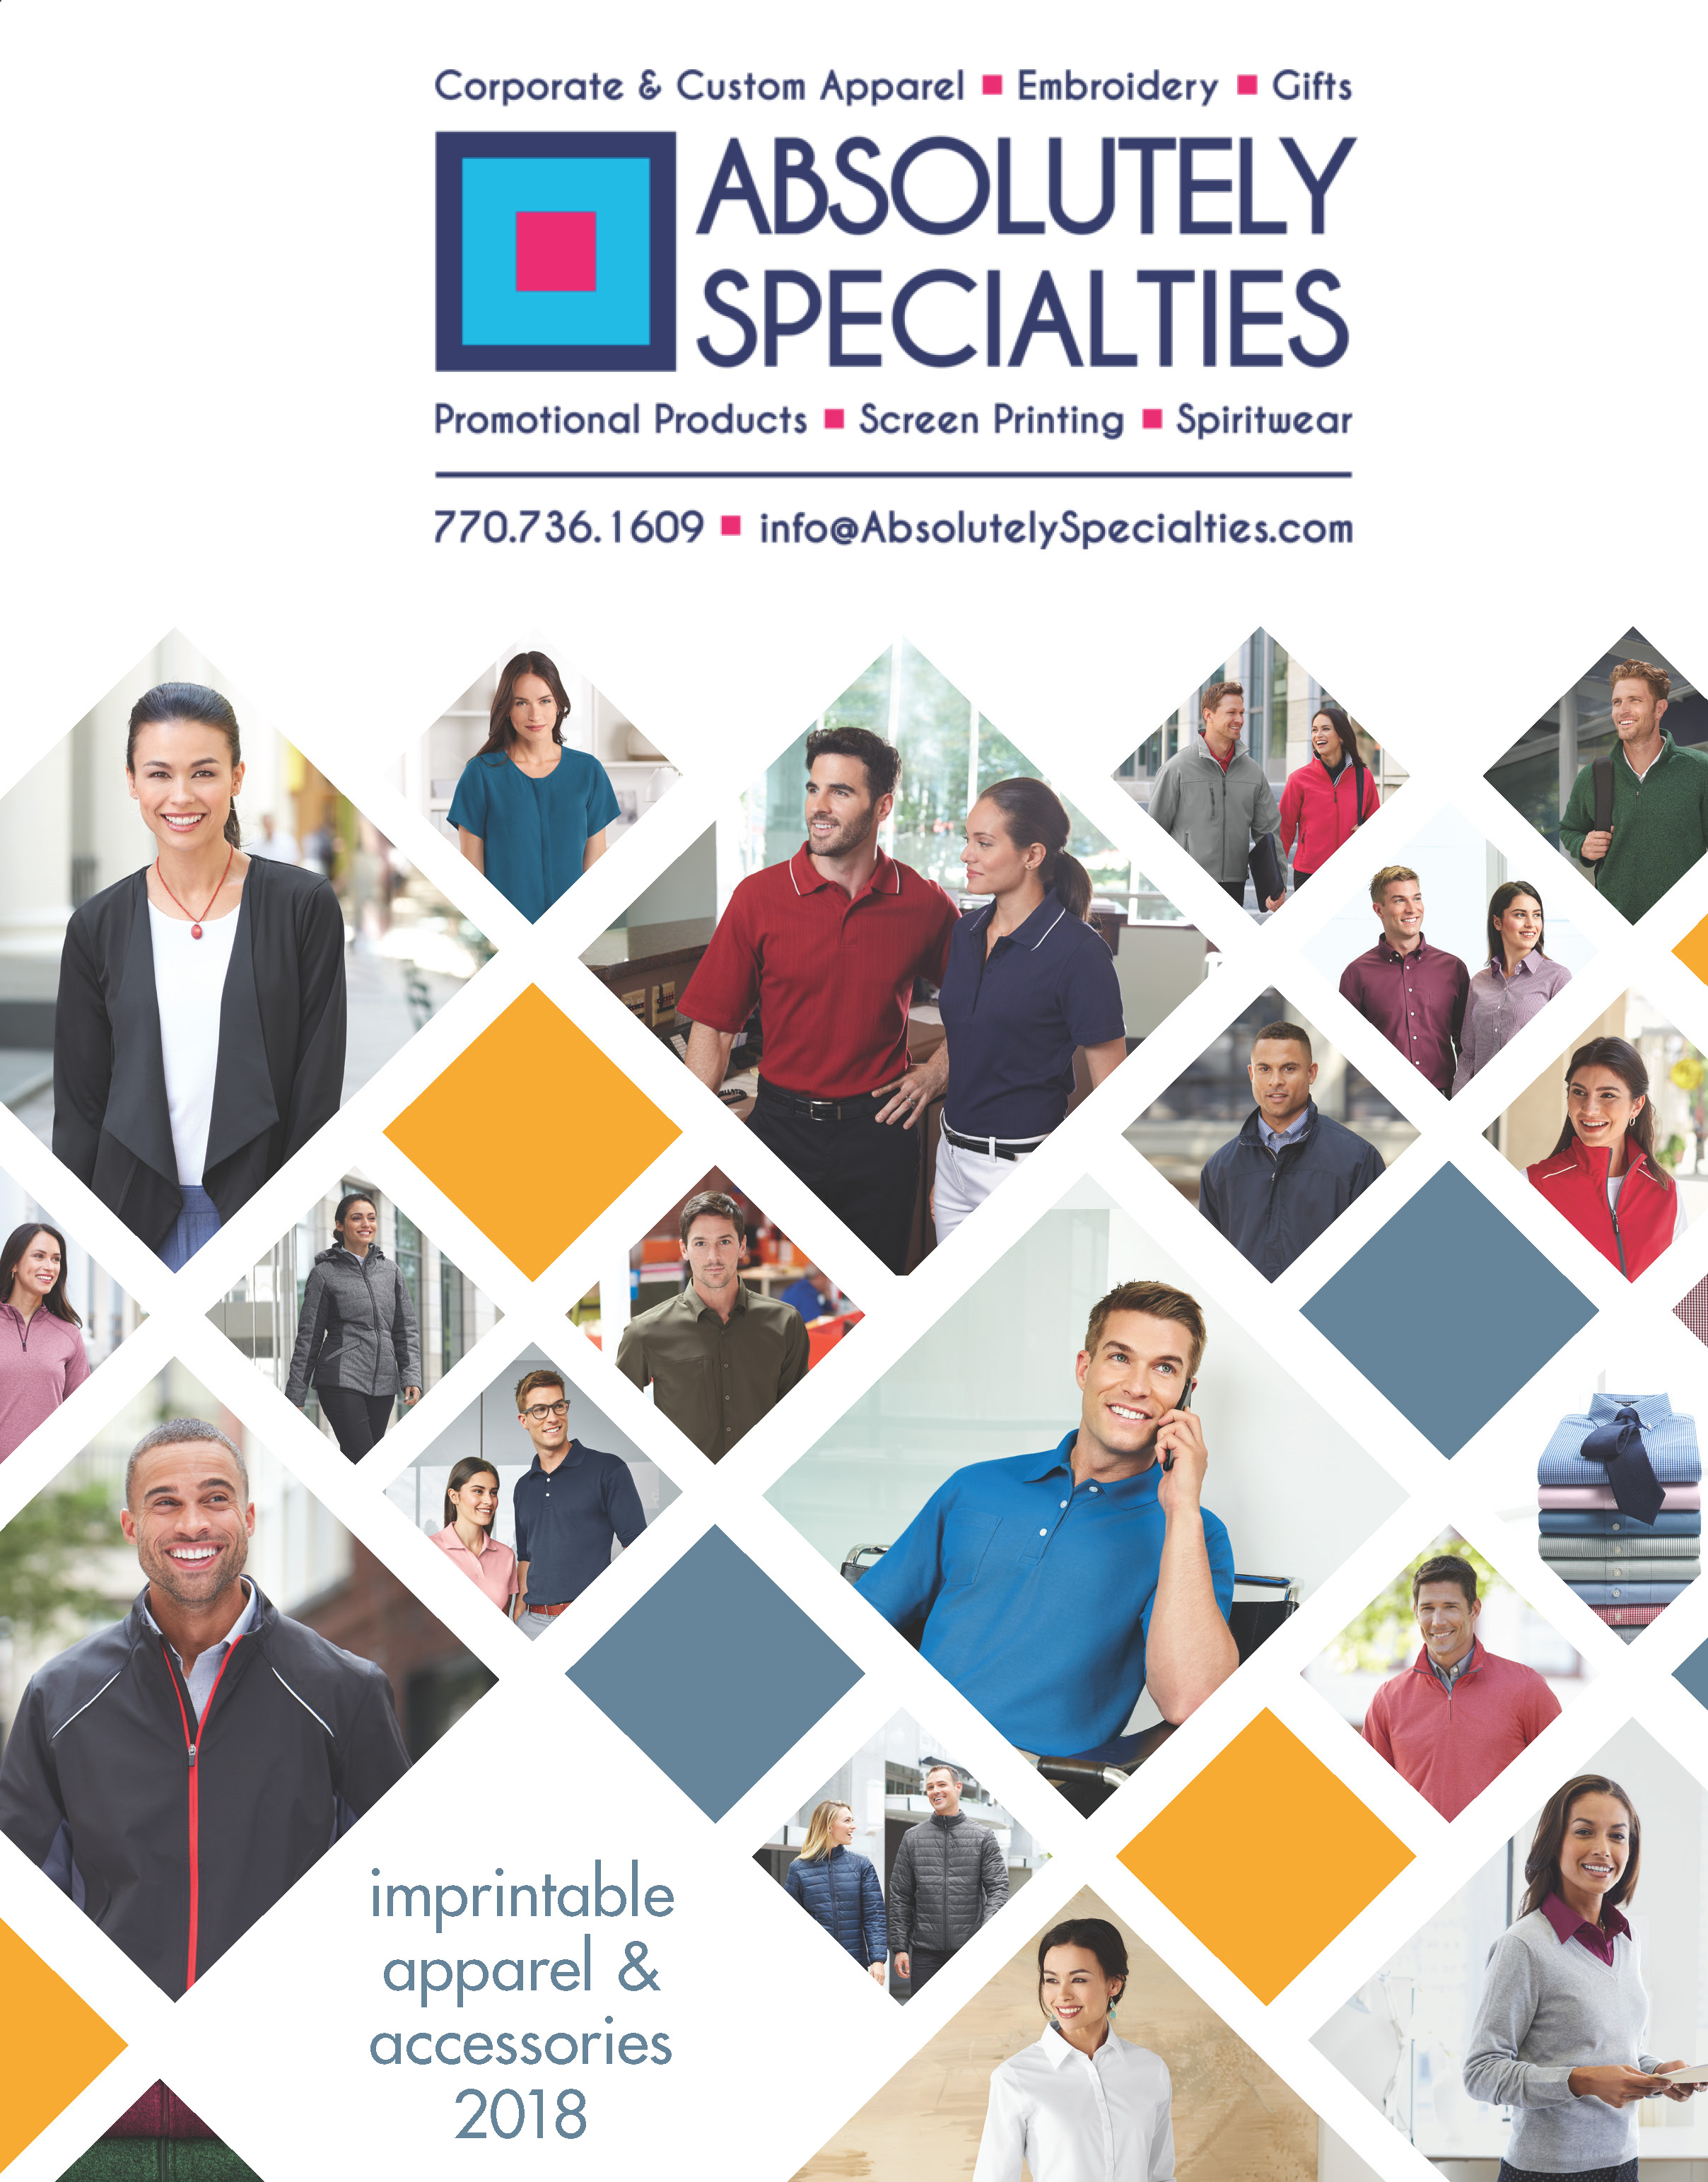 Absolutely Specialties Apparel & Accessories 2018